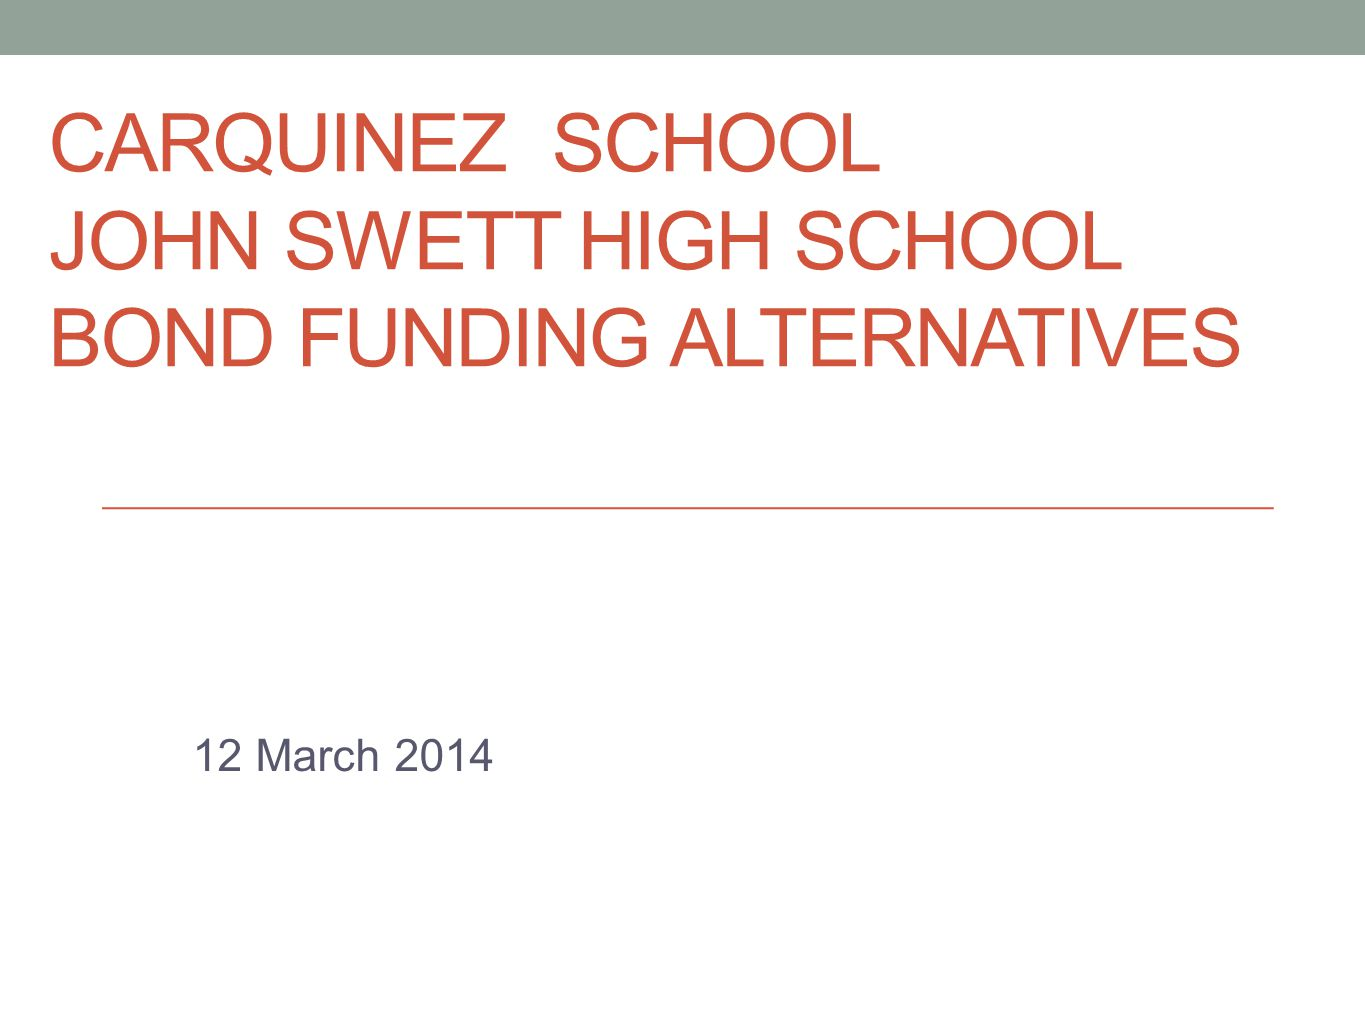 CARQUINEZ SCHOOL/JOHN SWETT HS CARQUINEZ SCHOOL JOHN SWETT HIGH SCHOOL BOND FUNDING ALTERNATIVES 12 March 2014